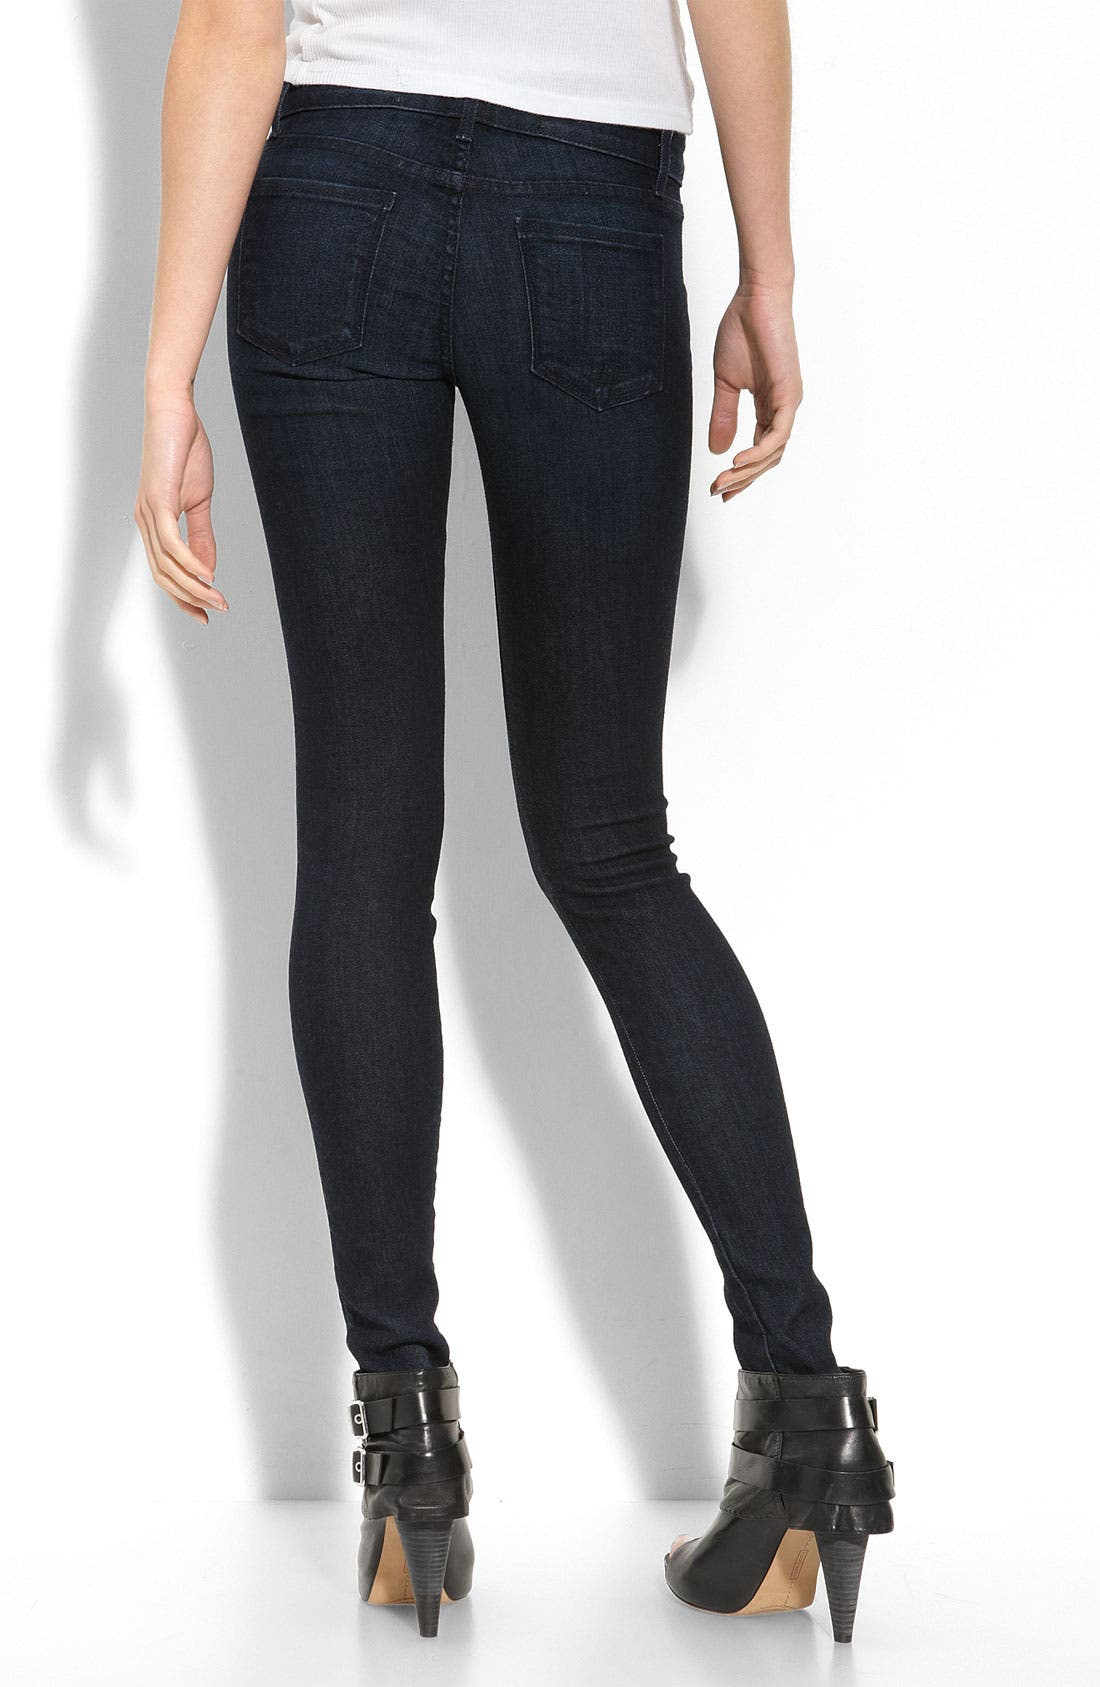 Main Image - Easy Money Jean Company 'Lira' Stretch Denim Leggings (After Party Wash)